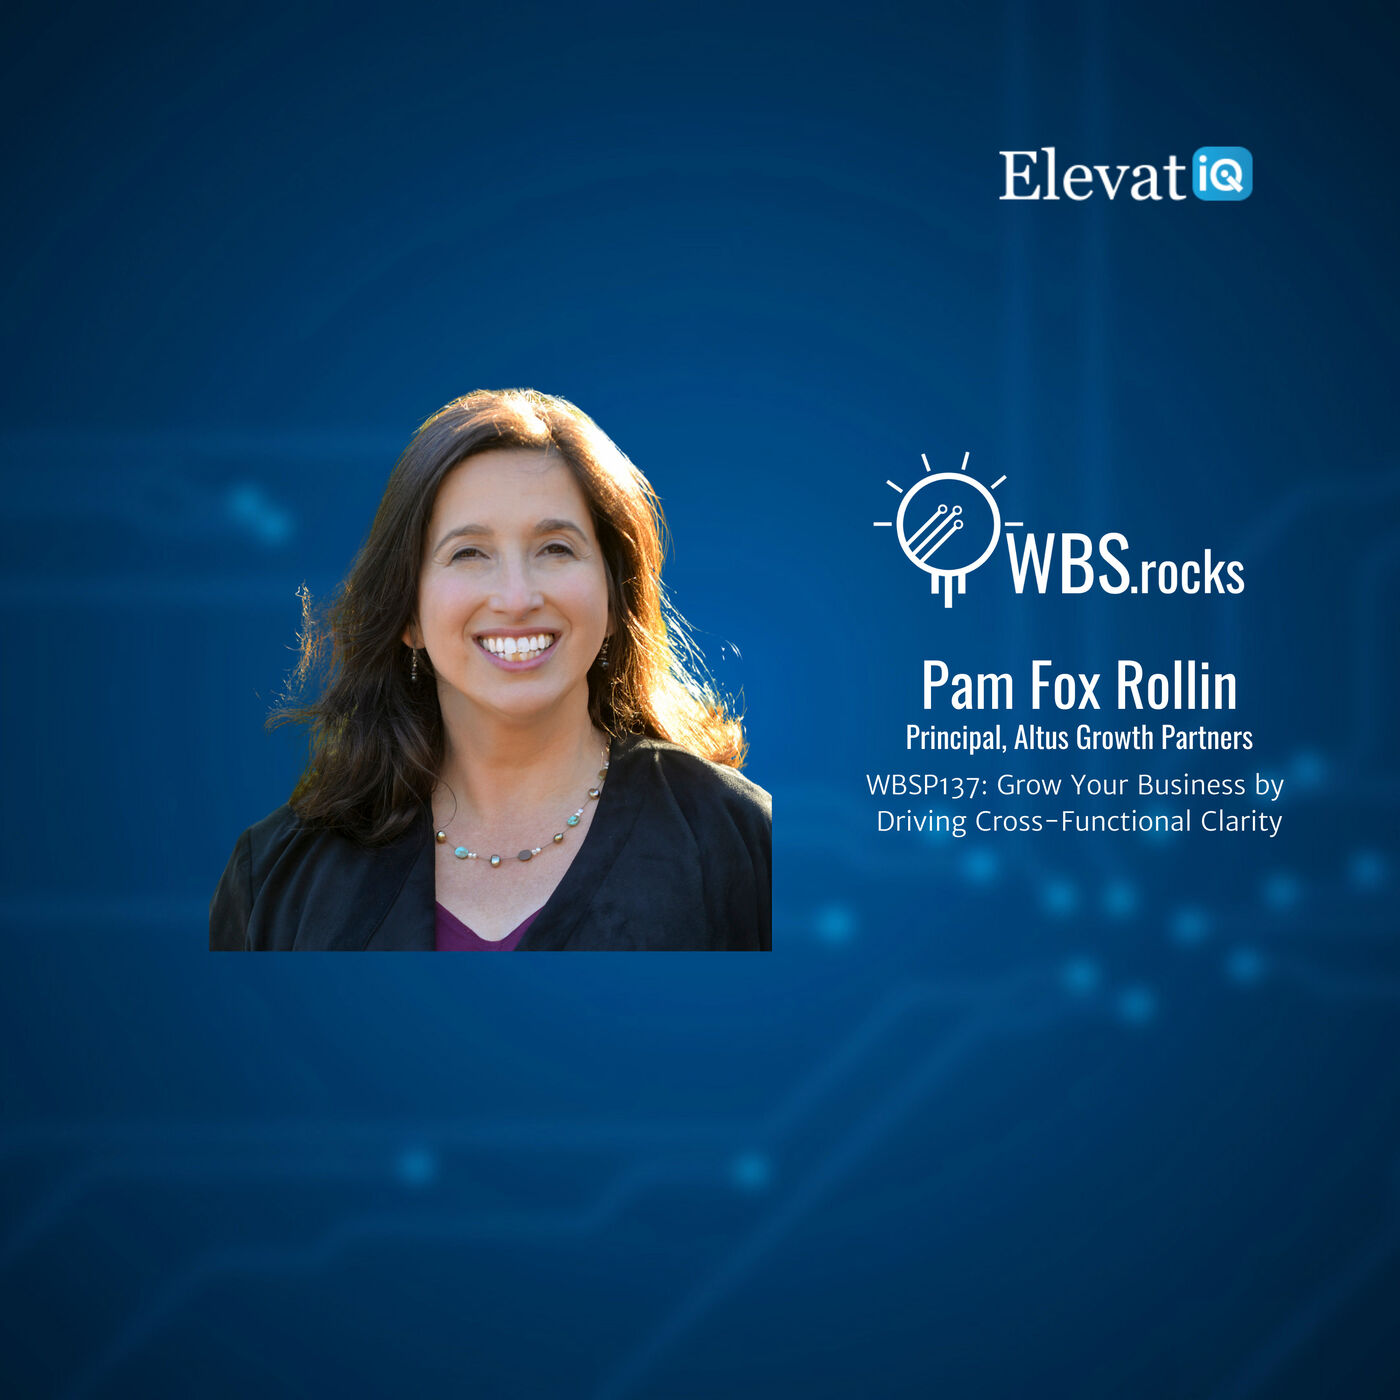 WBSP137: Grow Your Business by Driving Cross-Functional Clarity w/ Pam Fox Rollin